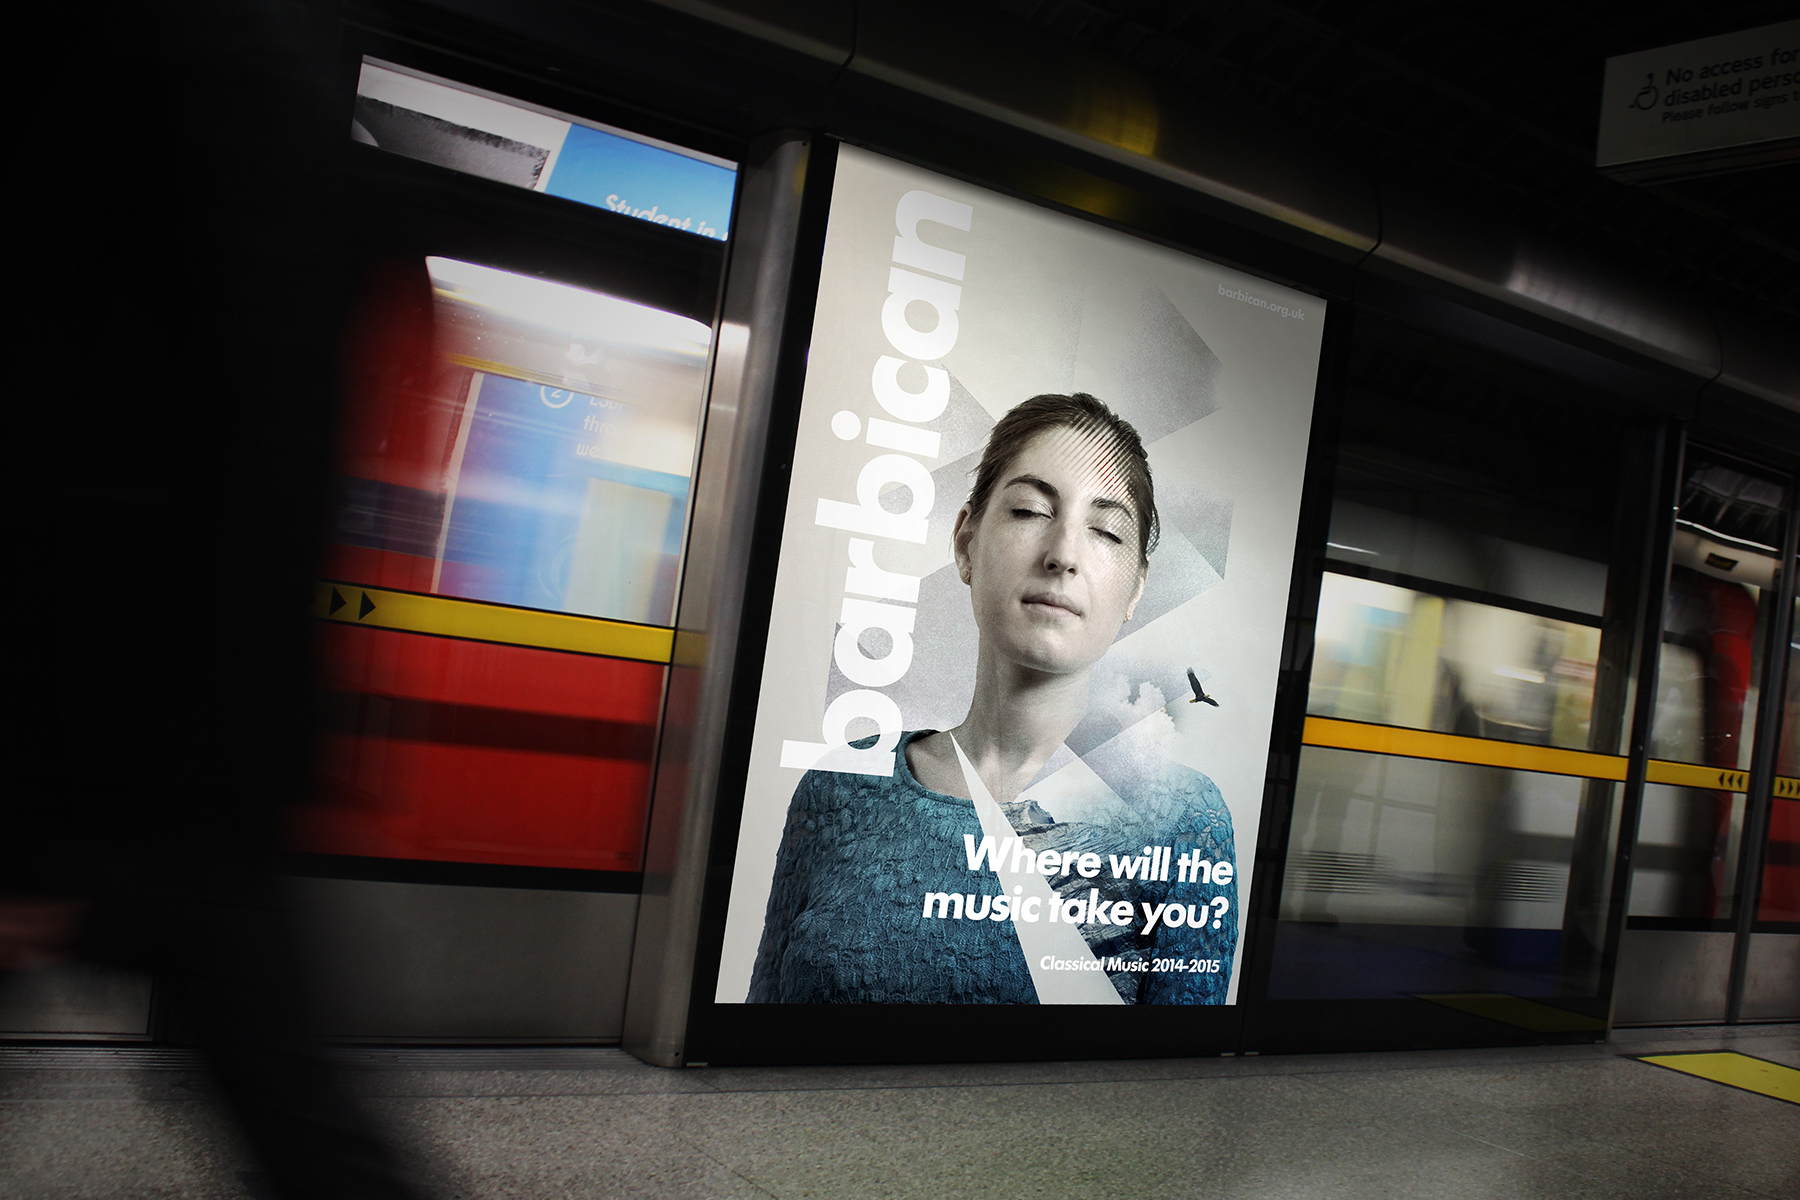 Firedog partnered with the Barbican over a four year period, producing a number of campaigns.